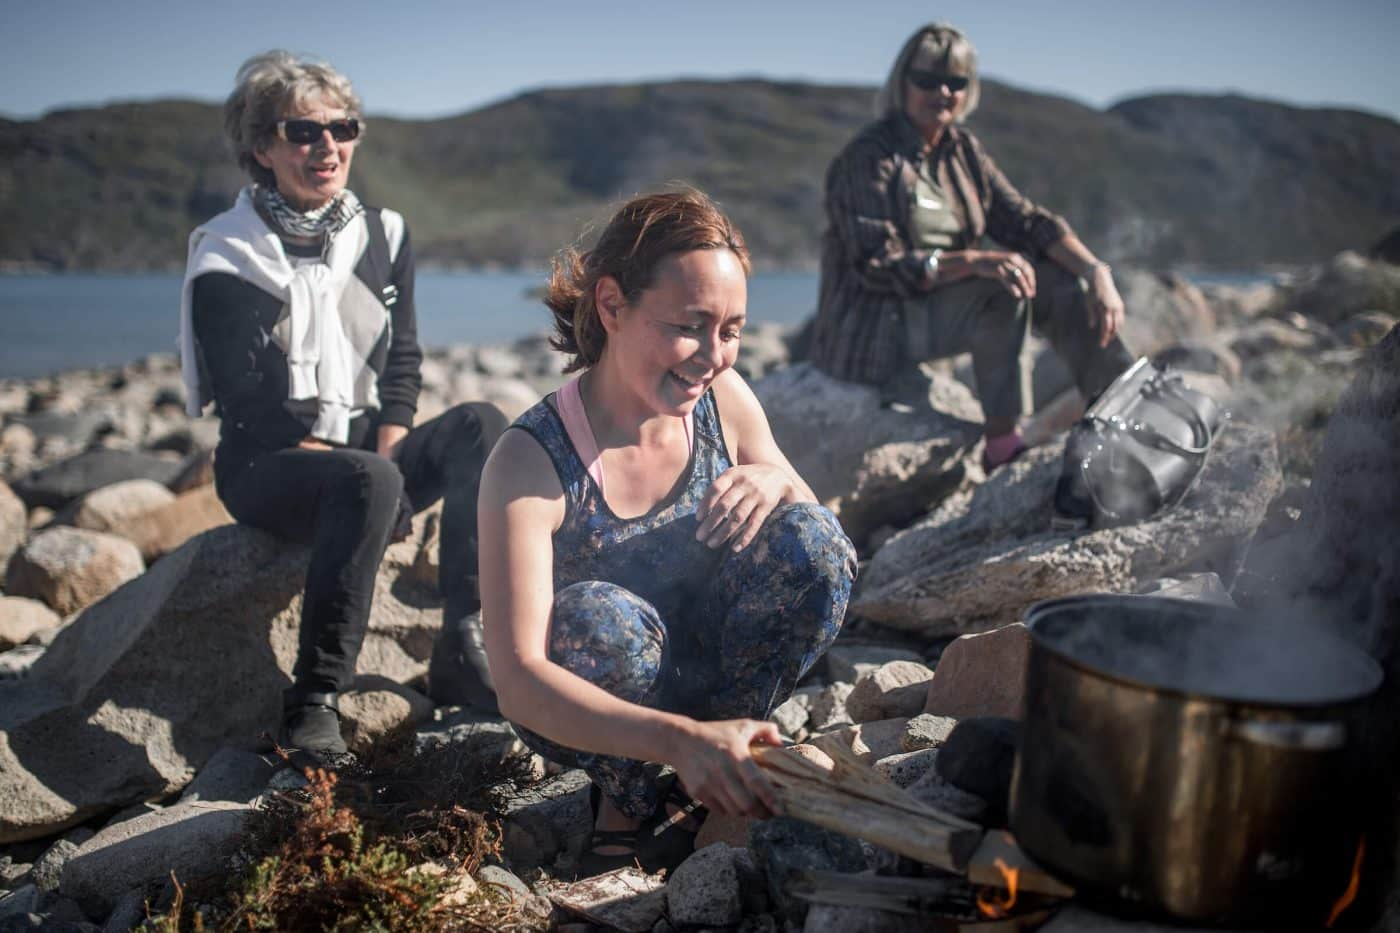 A young woman cooking on open fire in Narsaq in South Greenland, by Mads Pihl